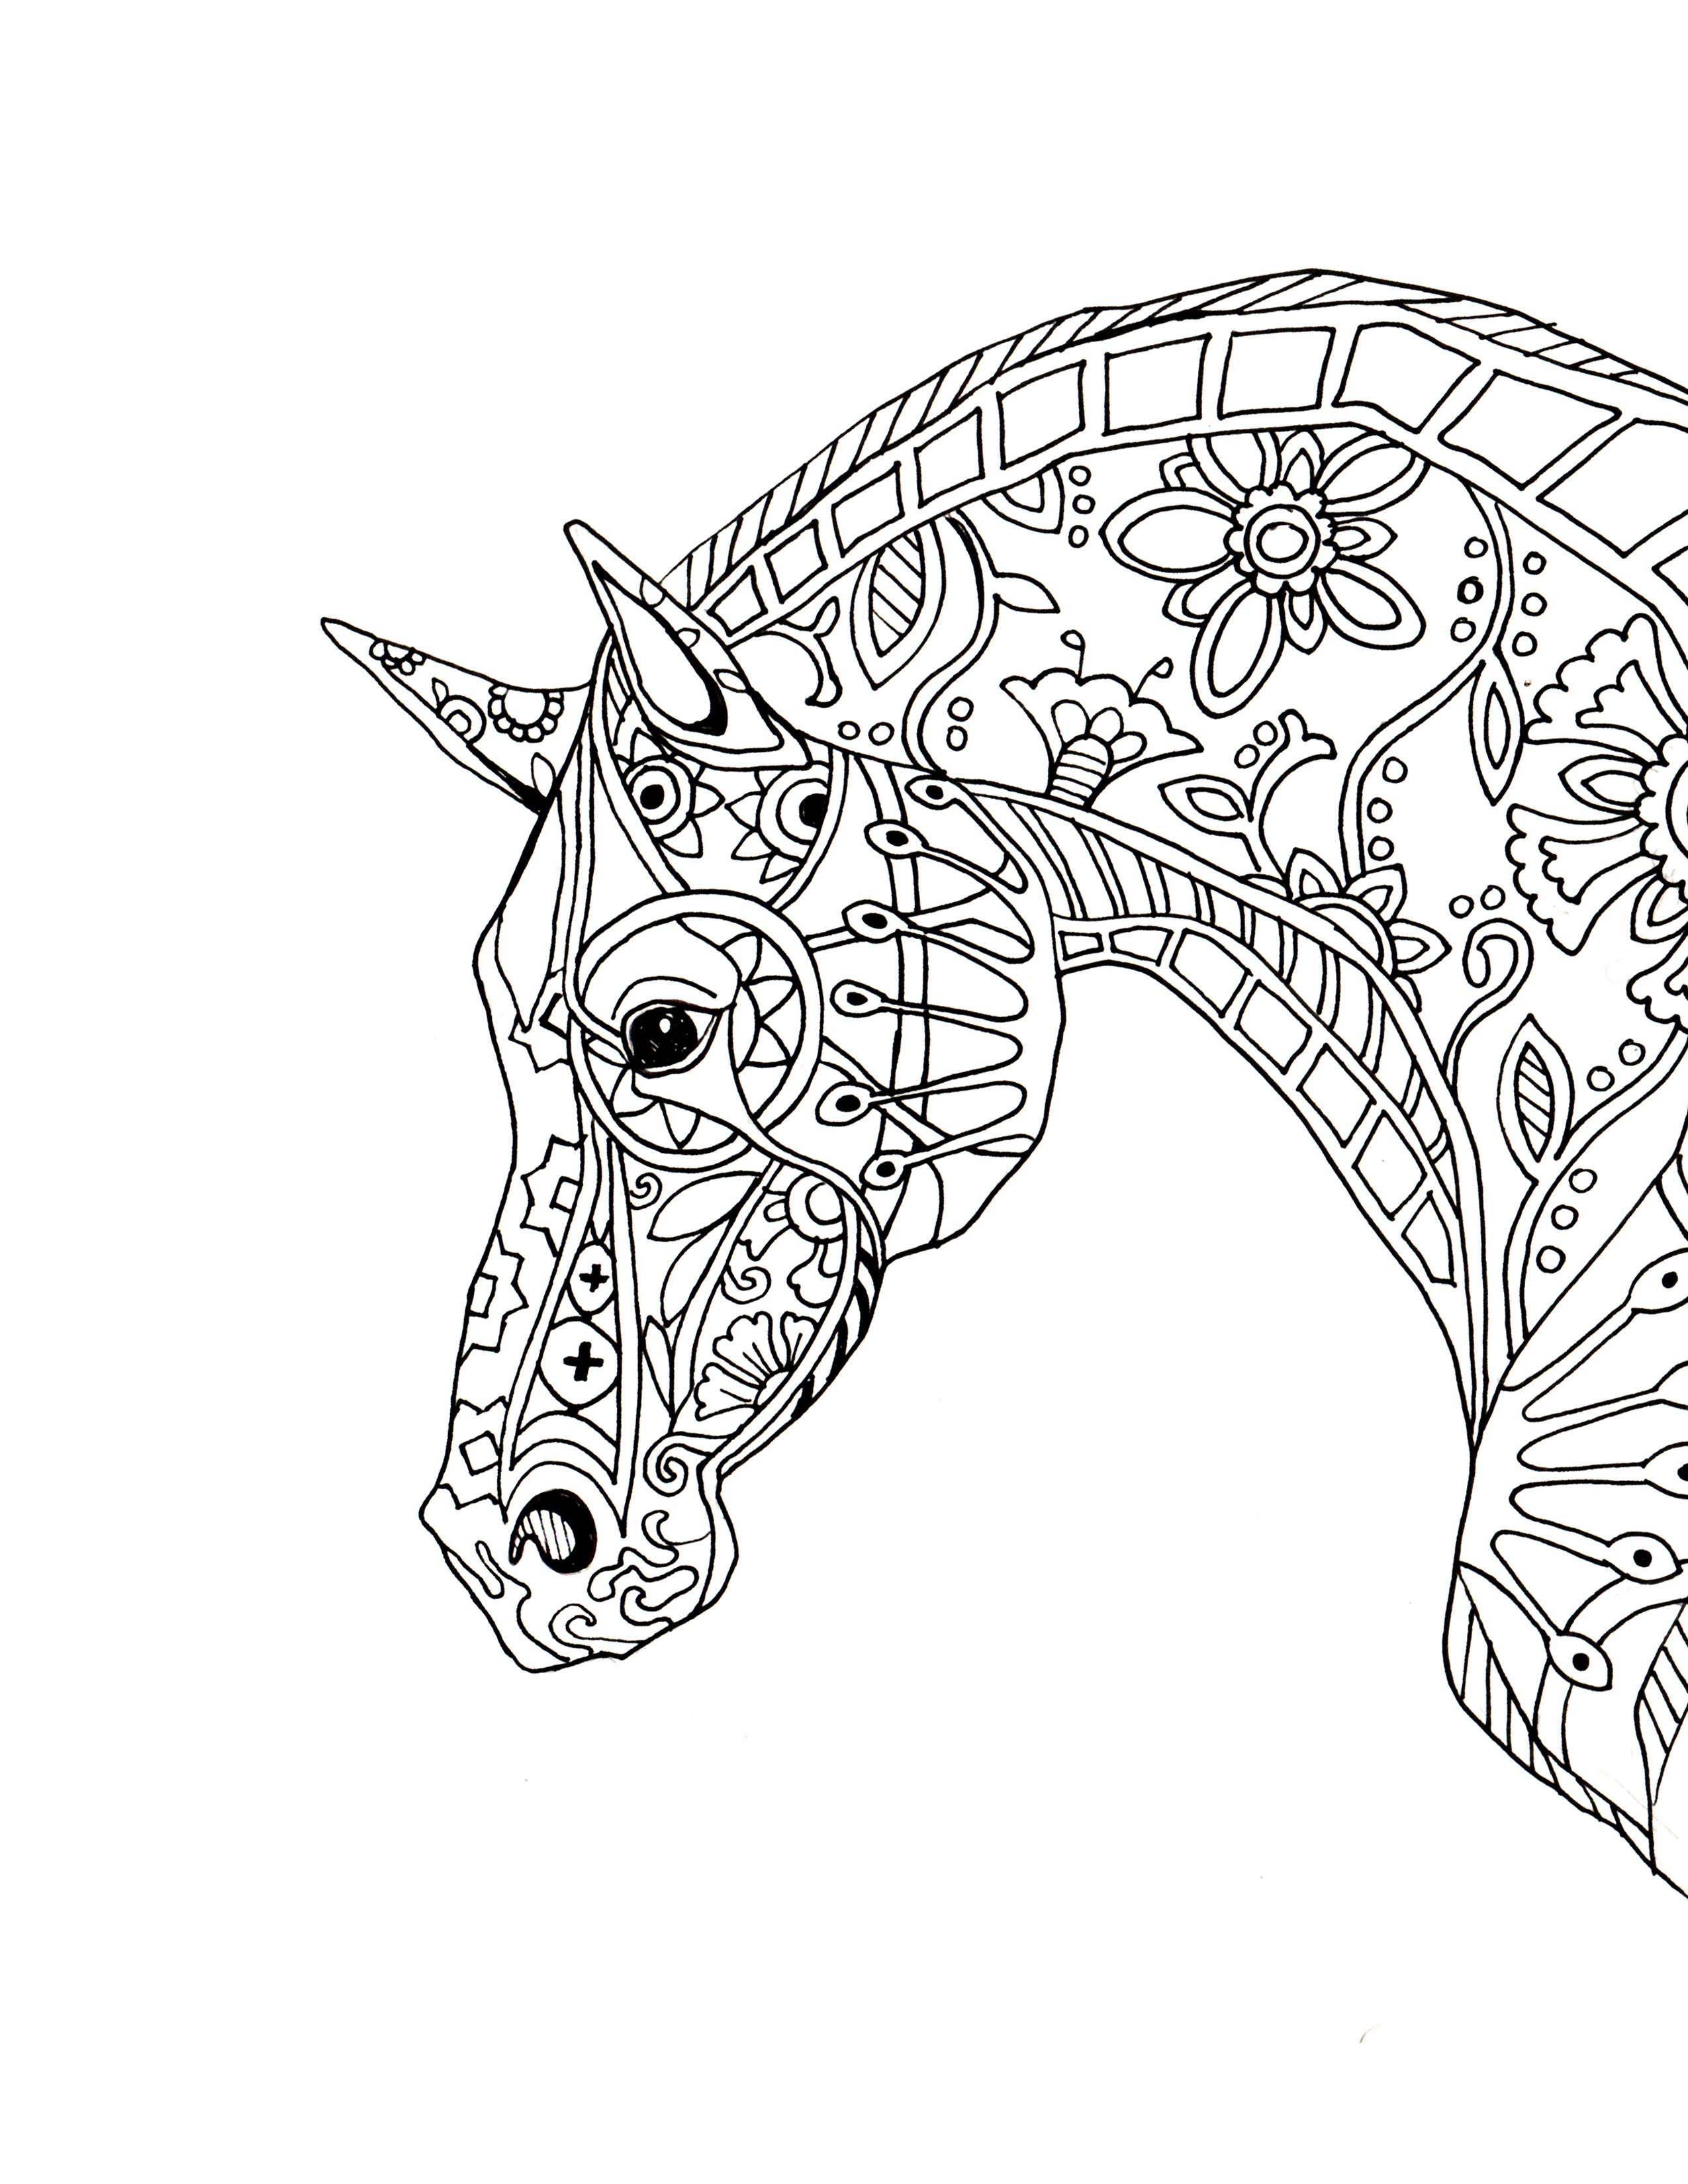 decorative-horse-profile-for-print.jpg (JPEG Image, 2550 × 3300 ...